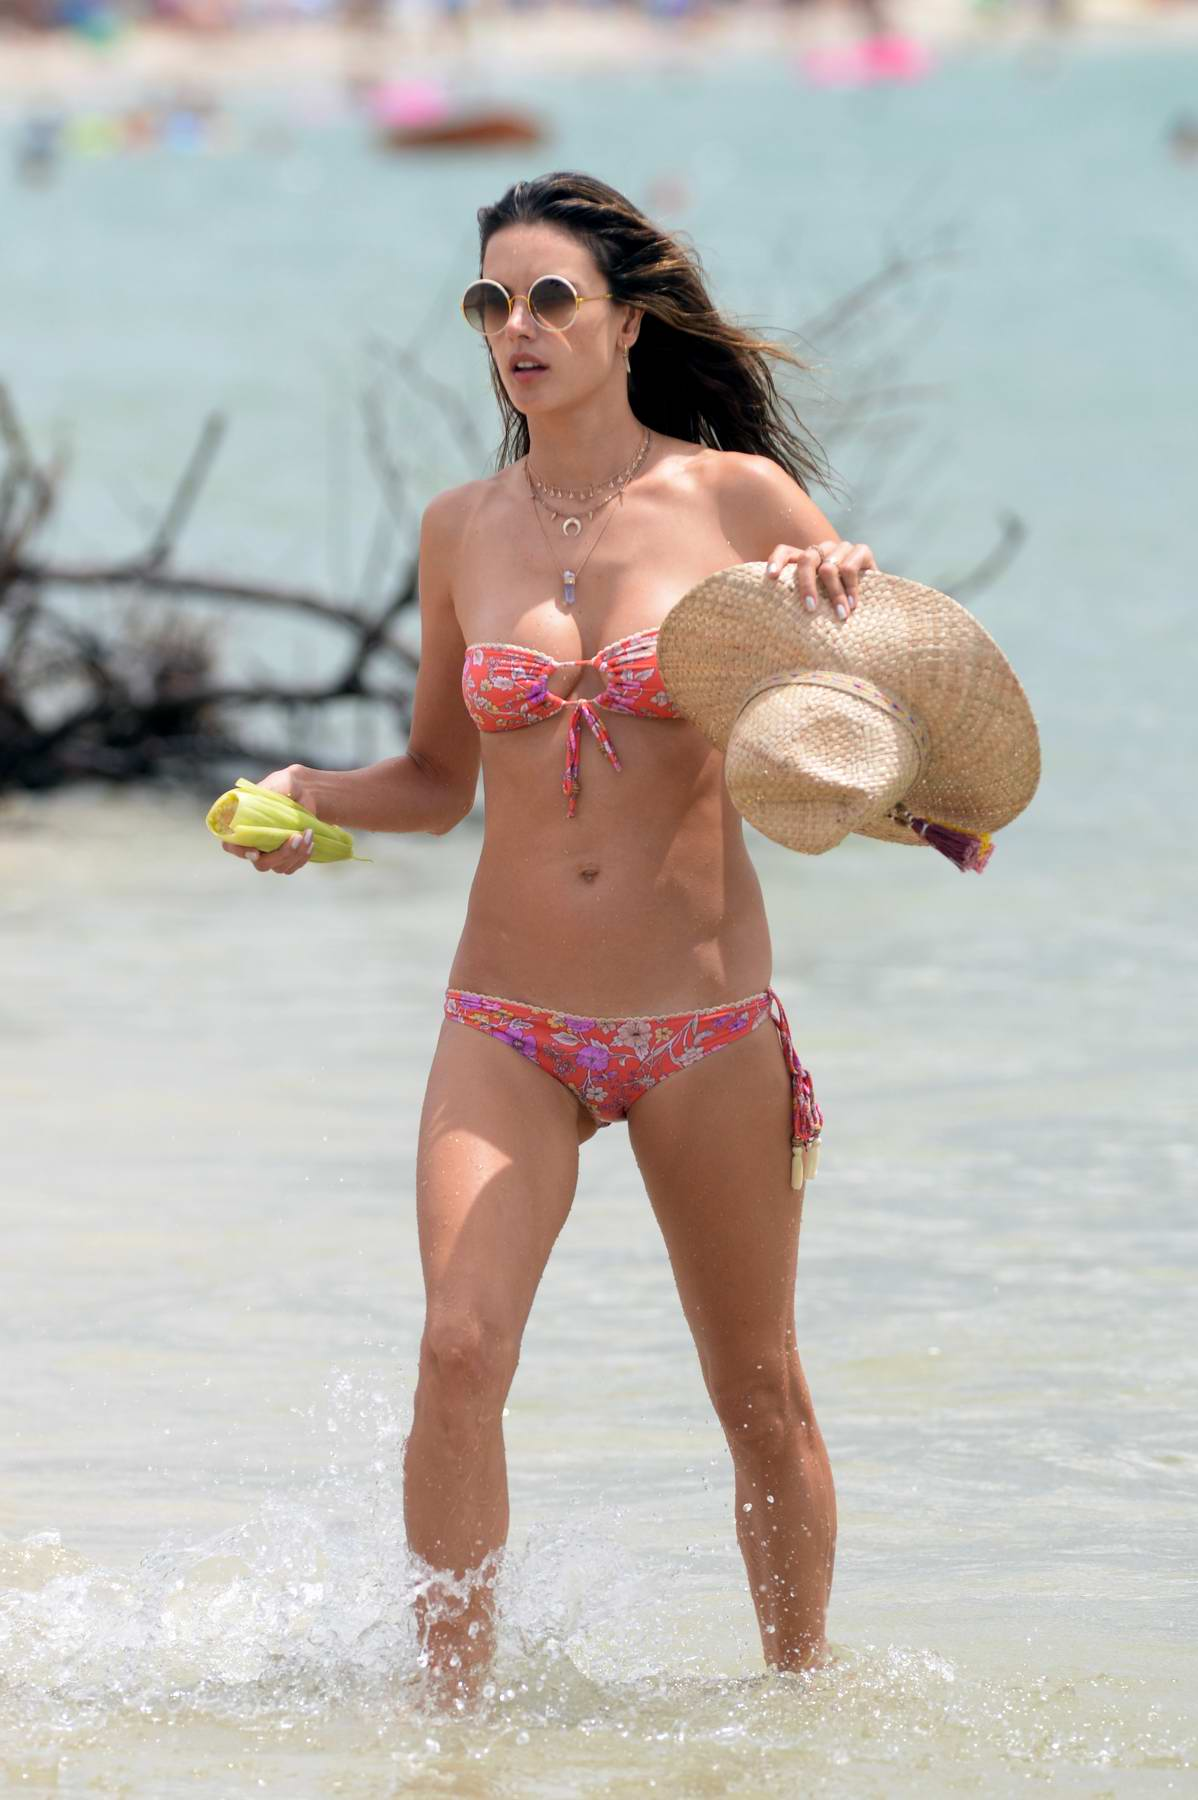 Alessandra Ambrosio rocks a pink floral print bikini as she continues to enjoy her holidays in Florianopolis, Brazil